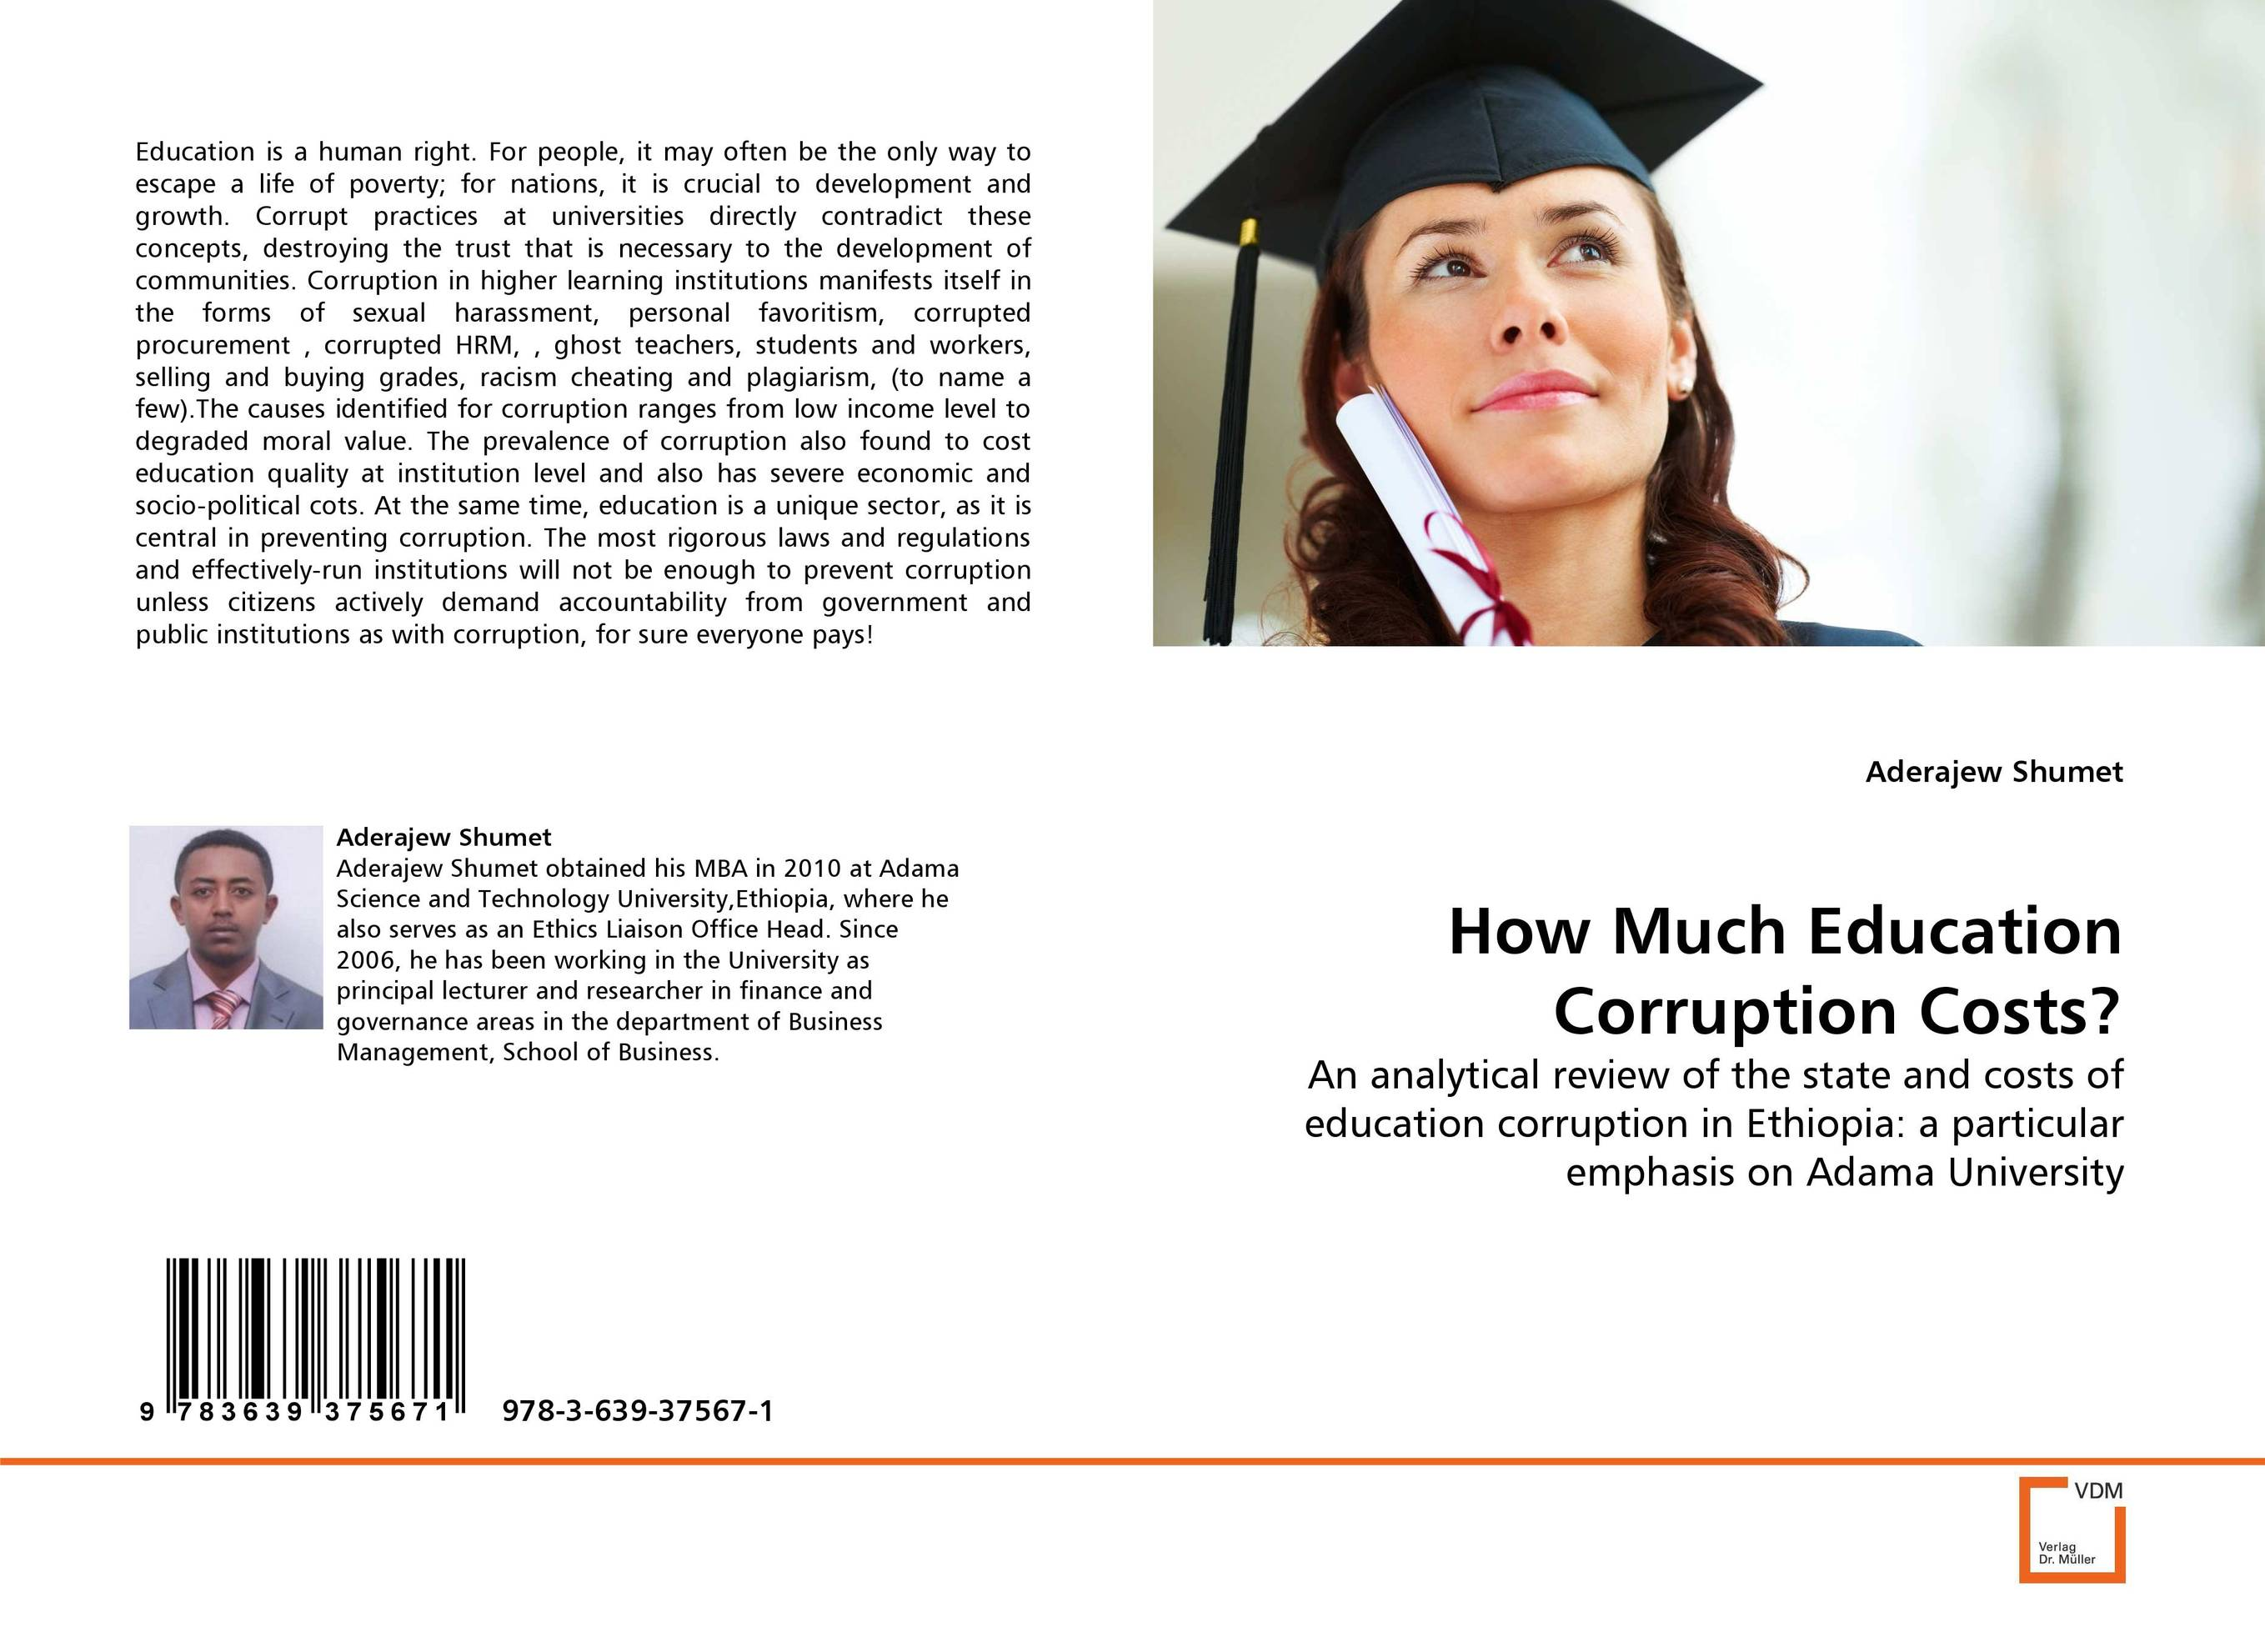 How Much Education Corruption Costs?